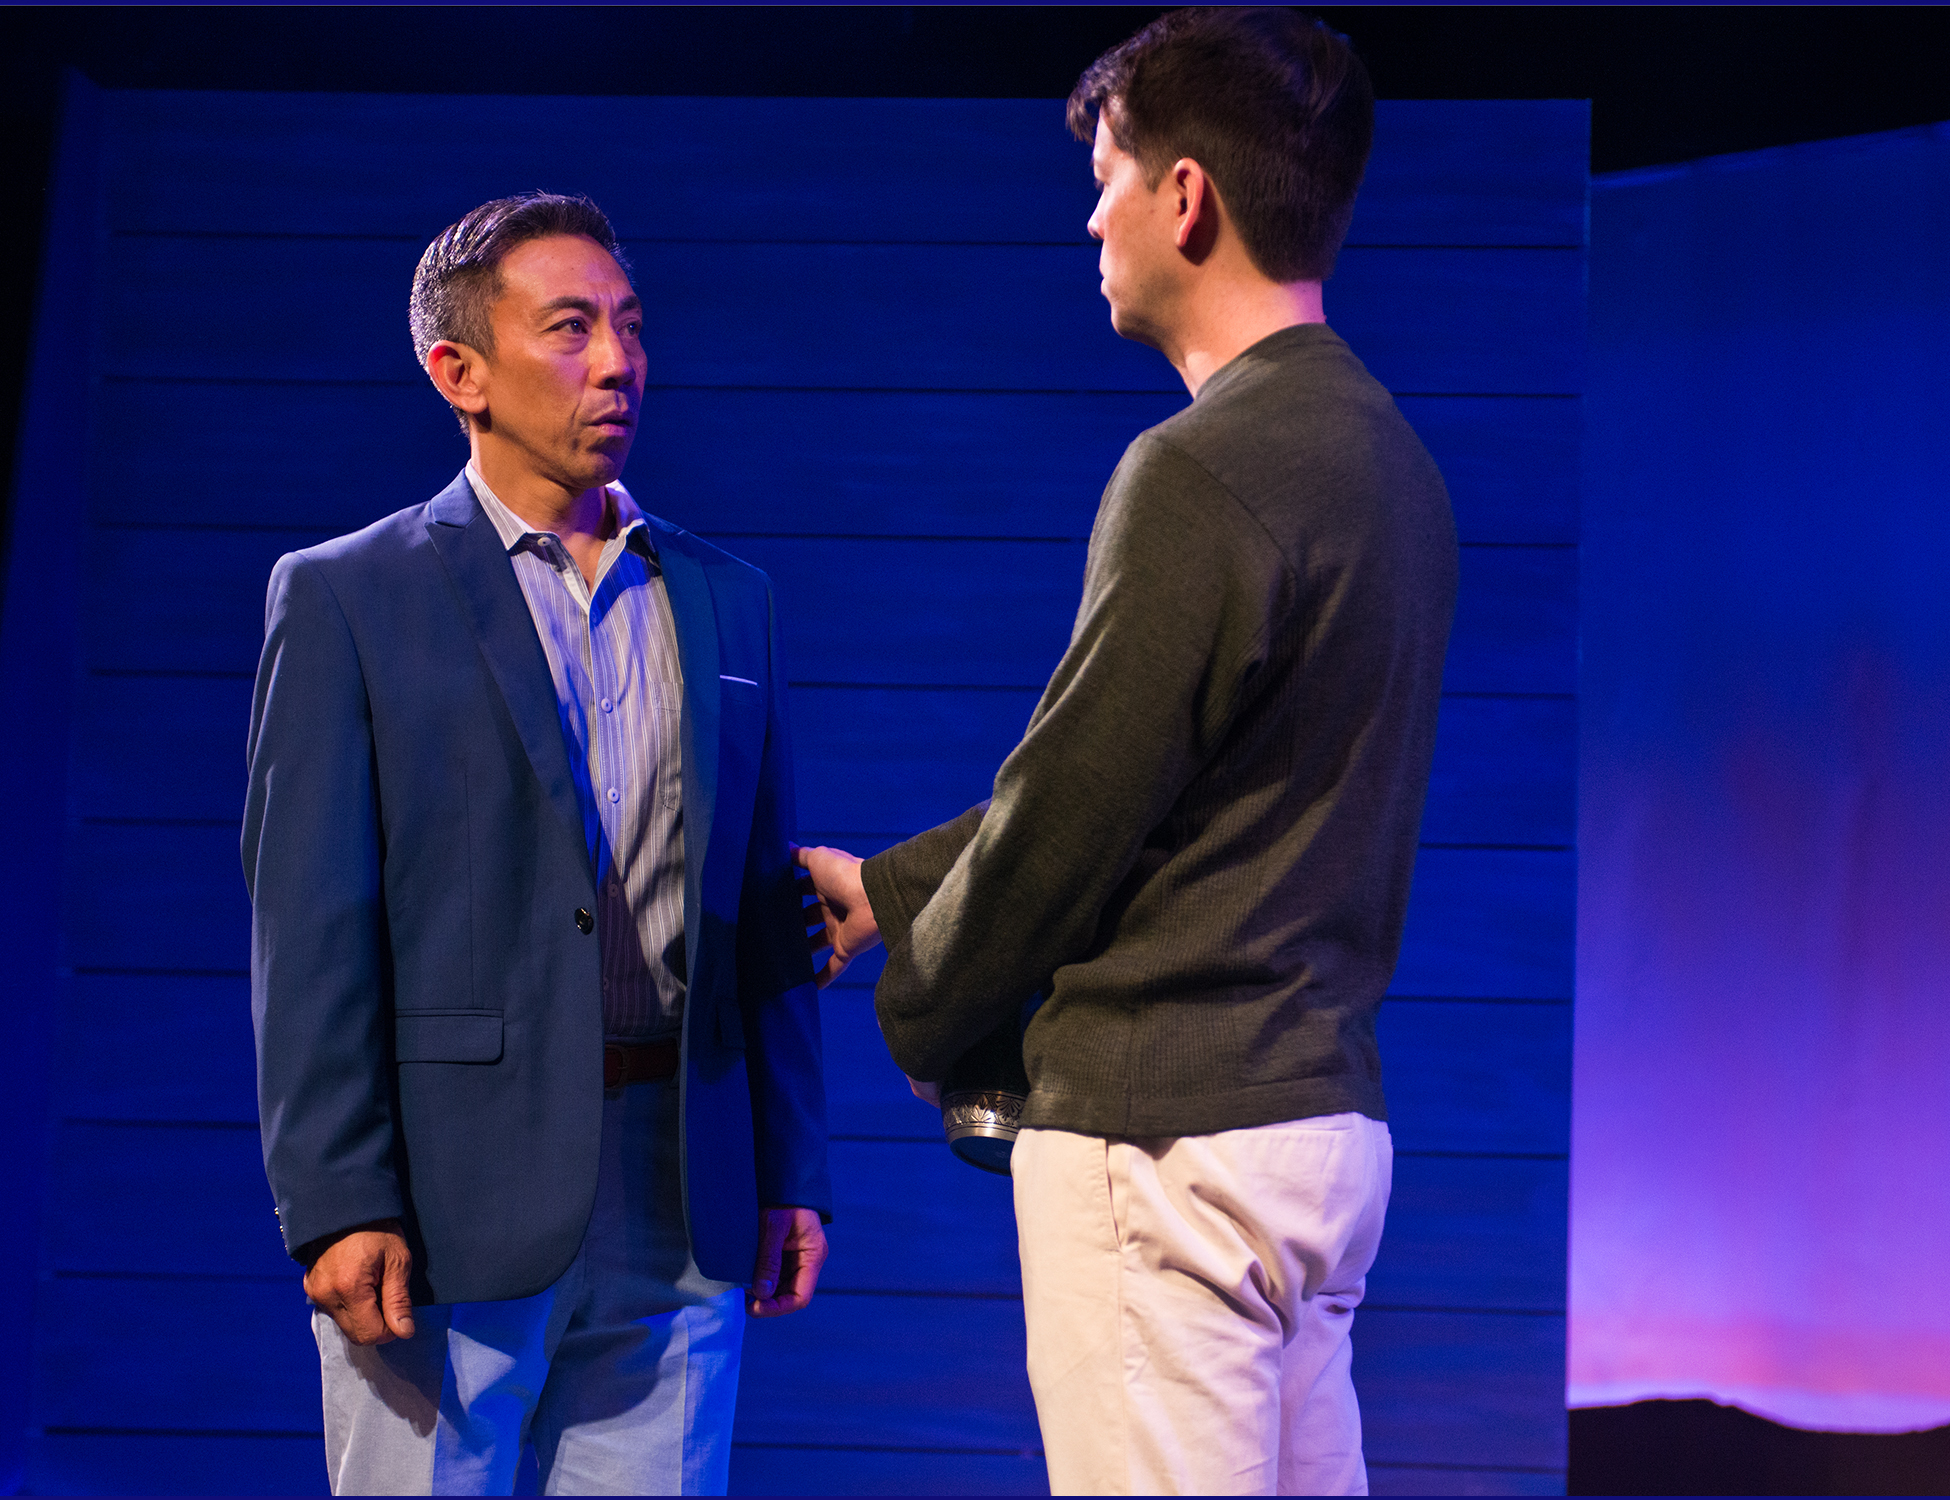 Pictured L to R Stephen (Joey Alvarado) and Steve (Greg Ayers) try to figure out their relationship. Photo by Lois Tema.